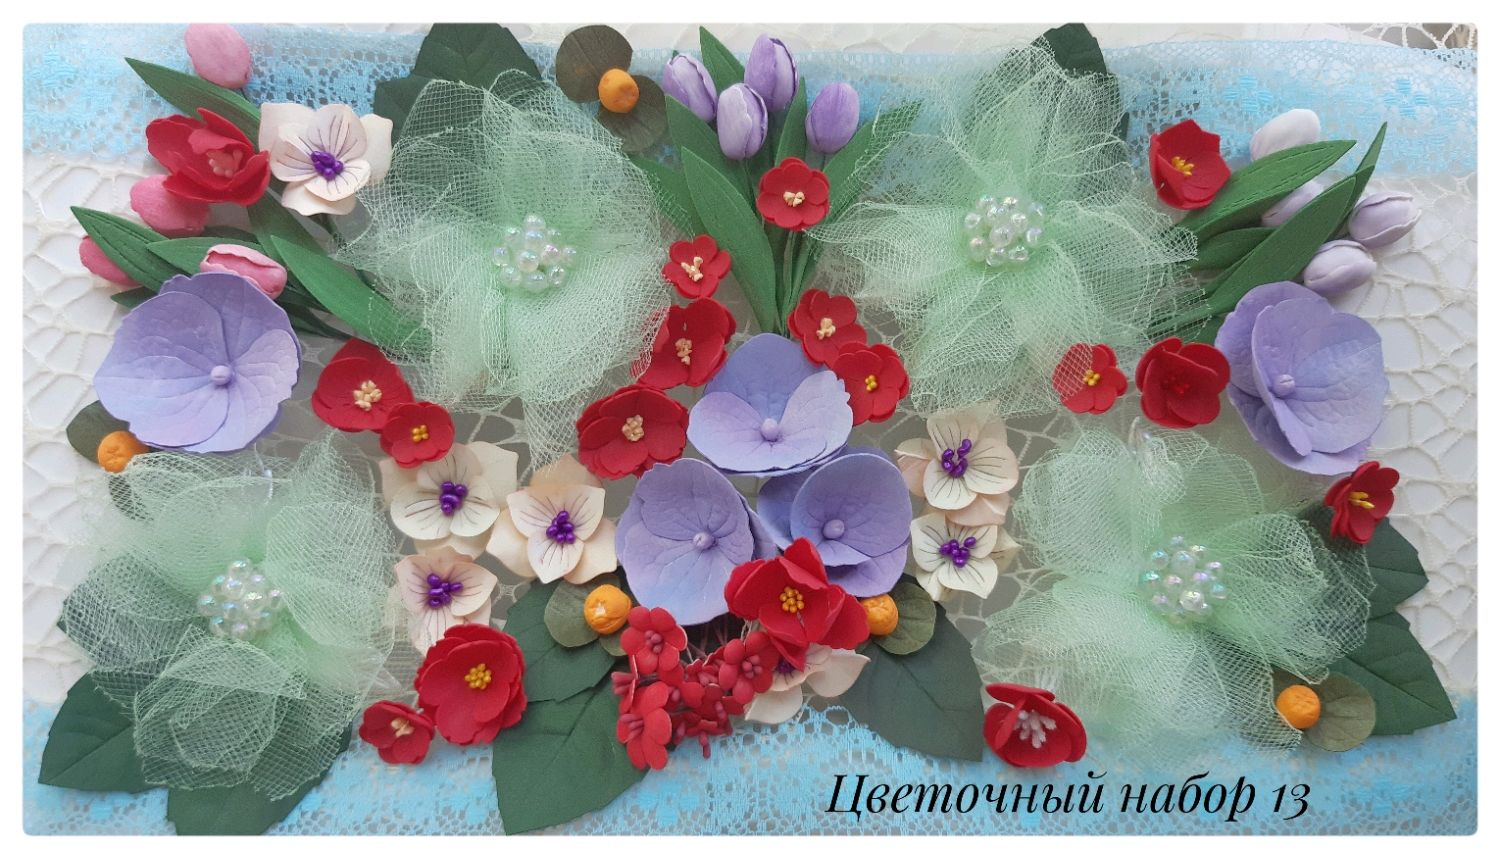 handmade flowers. scrapbooking. Materials for greeting cards. Creativity, Flowers artificial, St. Petersburg,  Фото №1